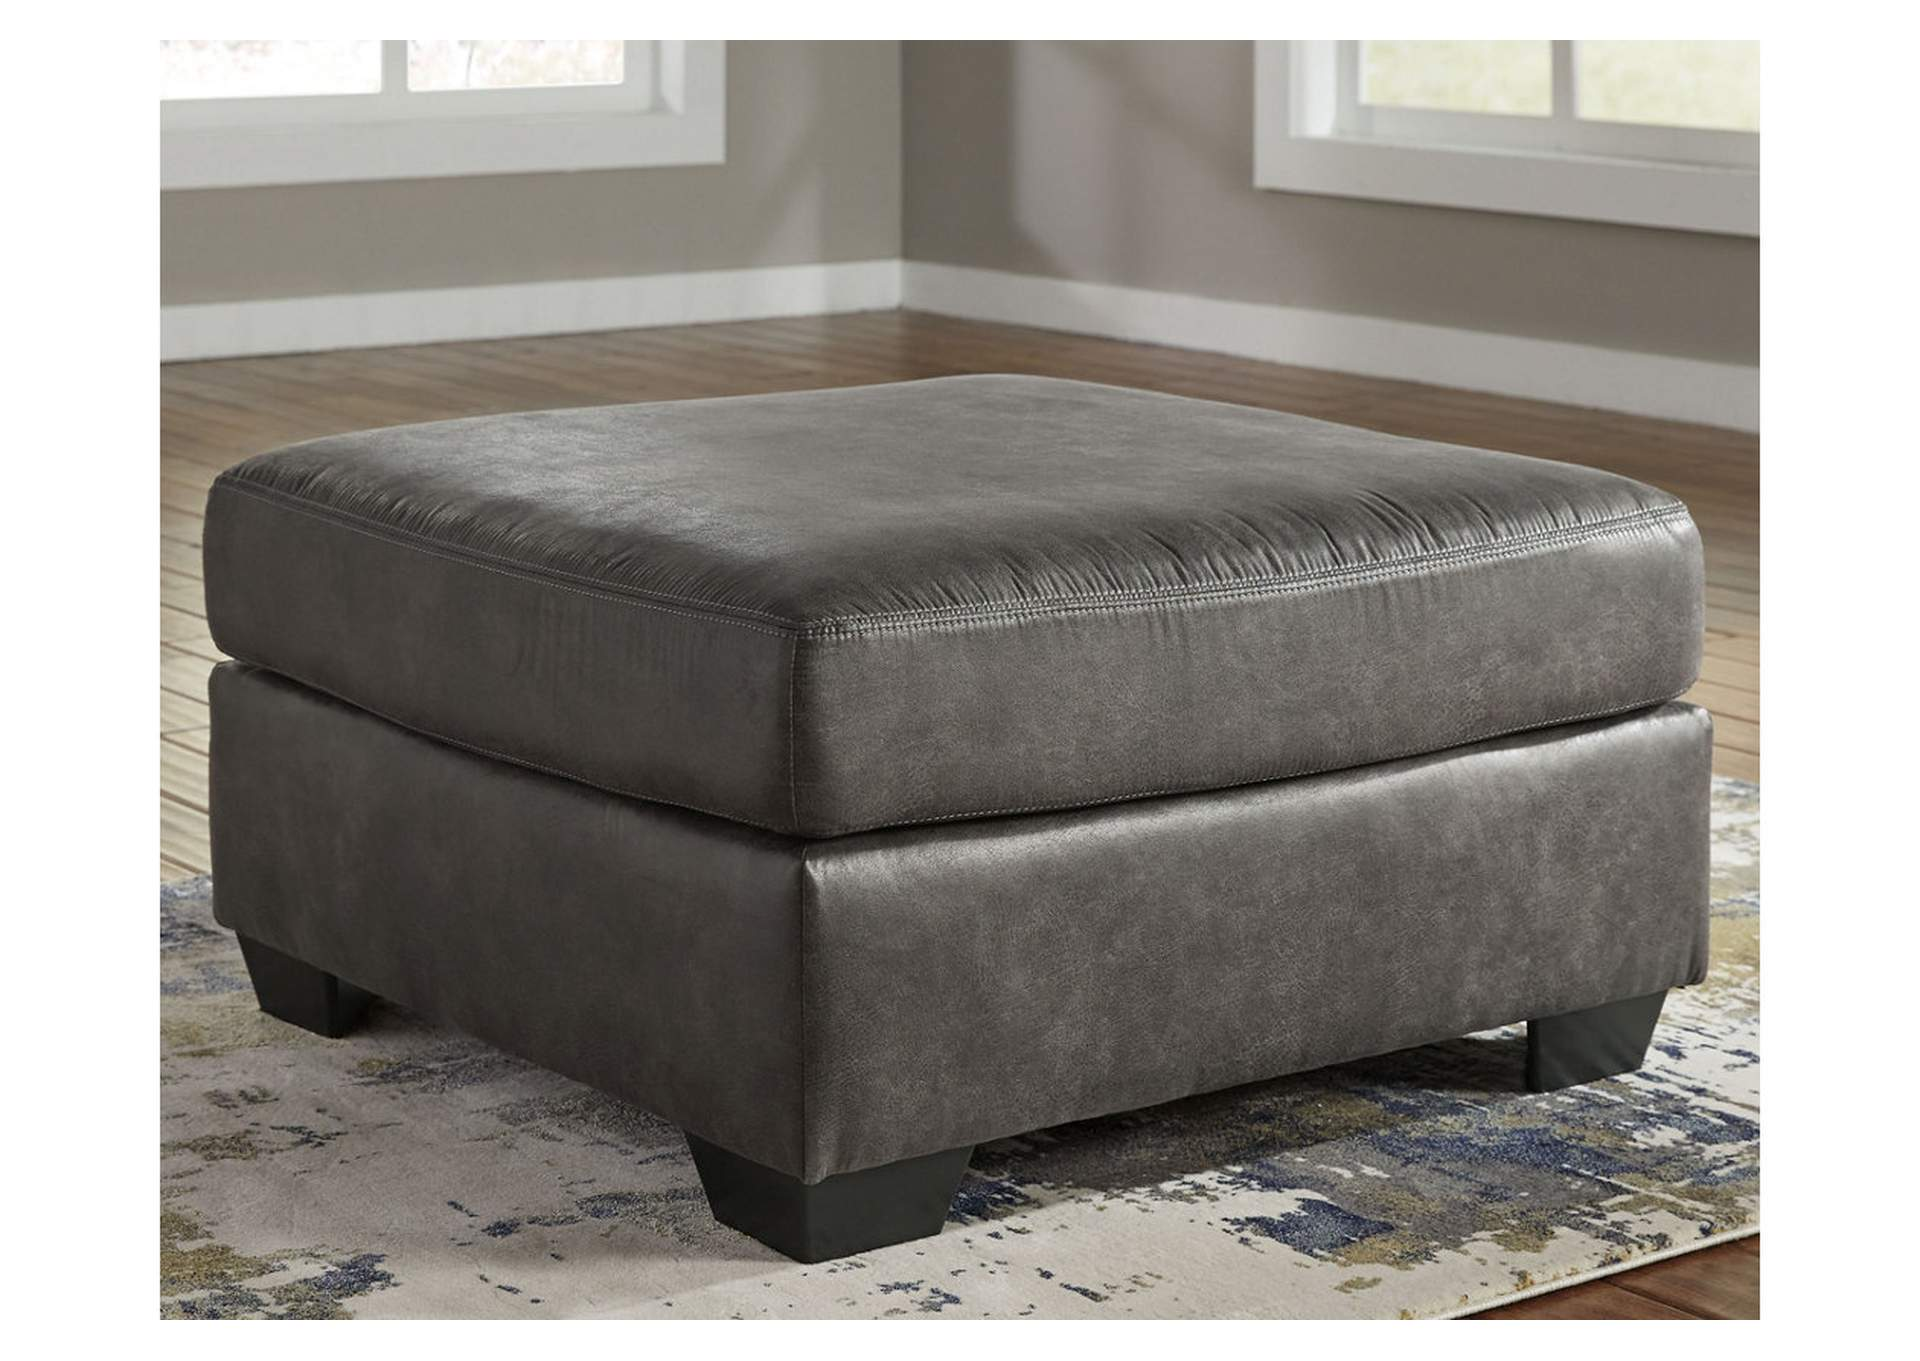 Bladen Slate Oversized Accent Ottoman,Signature Design By Ashley